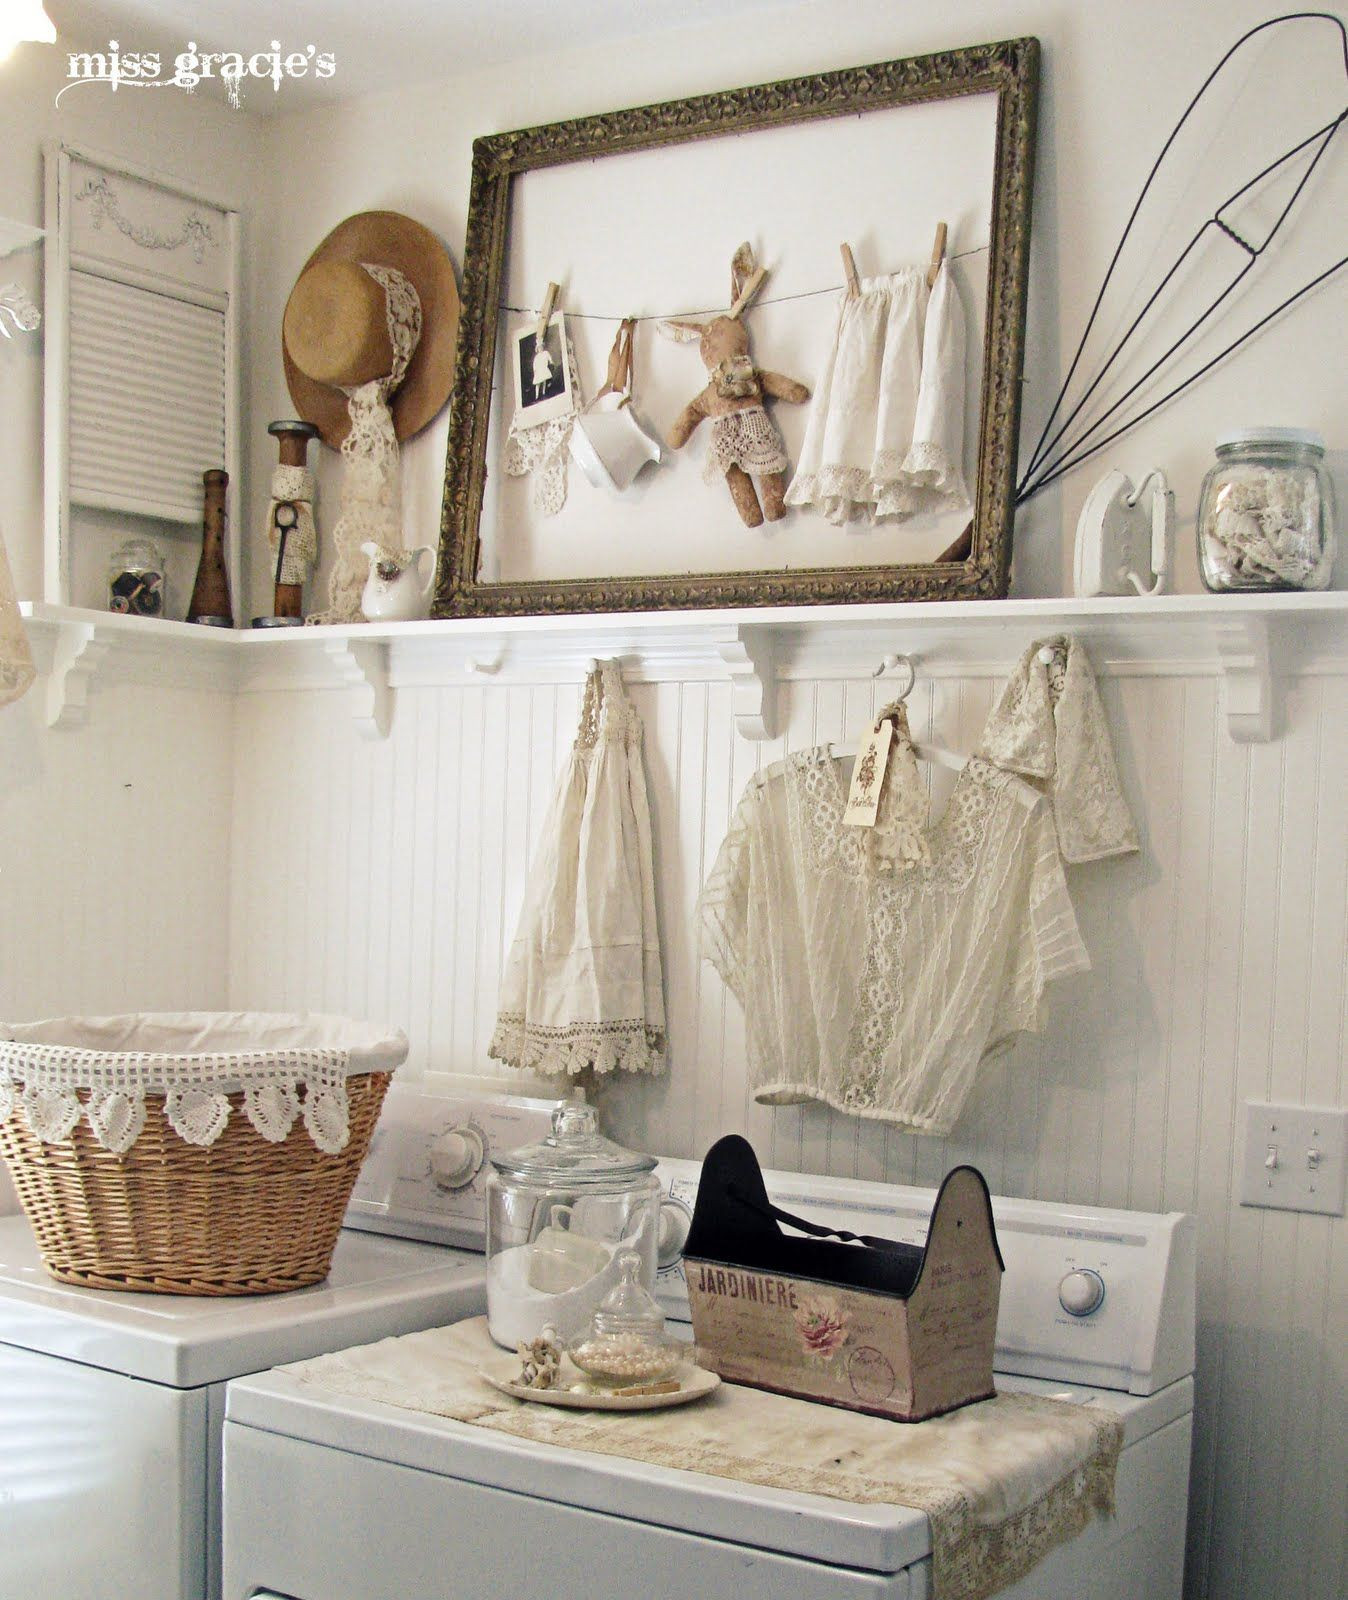 Best ideas about Shabby Chic Design . Save or Pin 52 Ways Incorporate Shabby Chic Style into Every Room in Now.